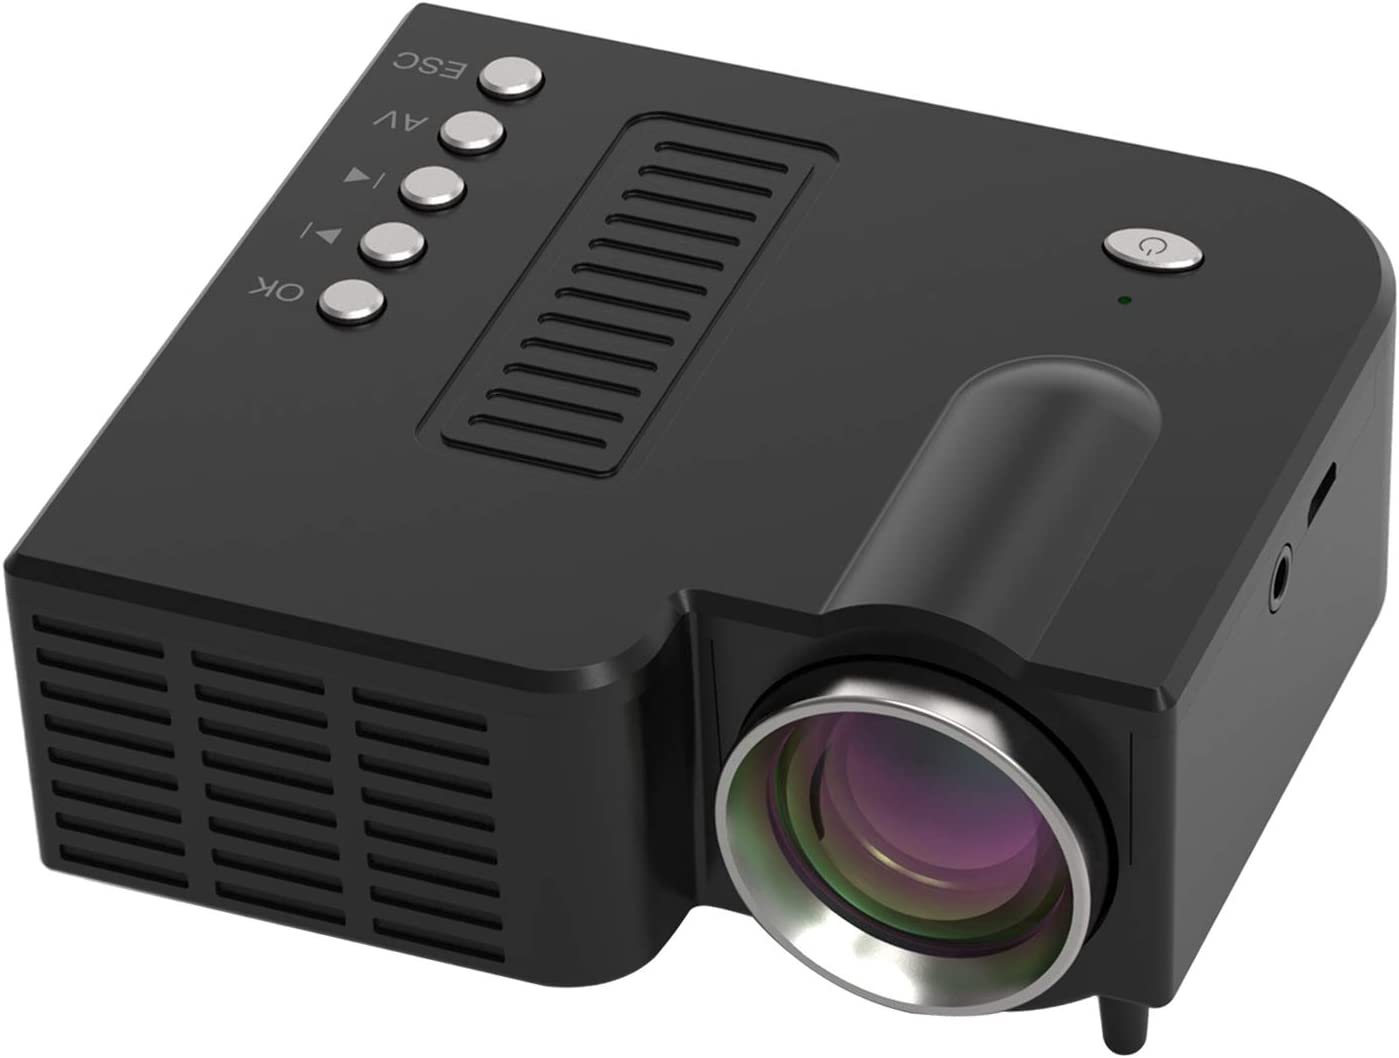 Prettyia Mini Projector, 1080P HD Video DLP Portable Projector WiFi, Wired Screen, Pocket Sized Home Theater Projector - Black